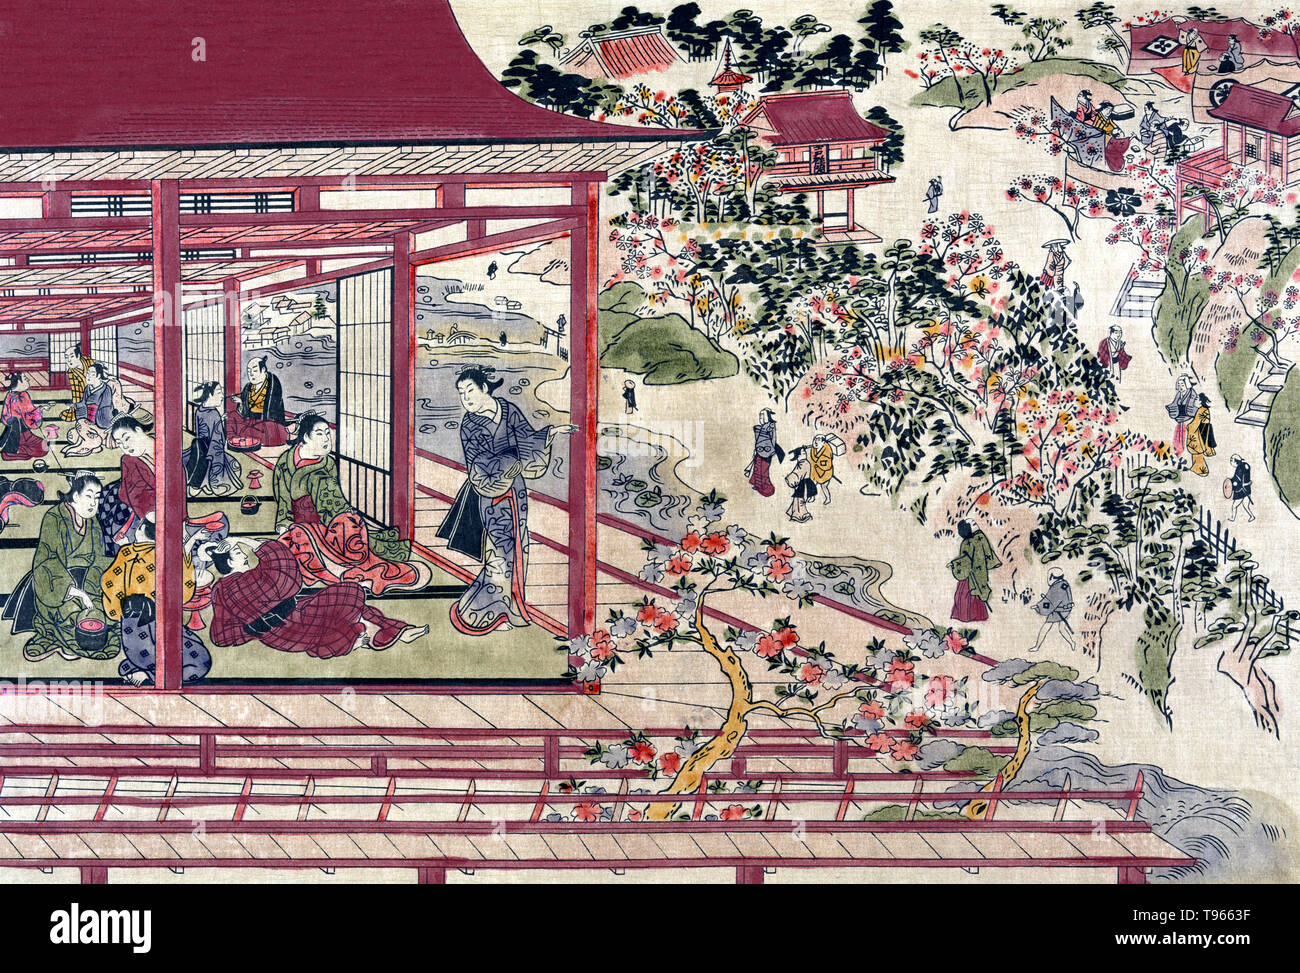 Ueno ikenohata sakura no hanami no kei. Print shows many people in a pavilion and in Ueno Park viewing blossoms on cherry trees. A cherry blossom (commonly known in Japan as sakura) is the flower of any of several trees of genus Prunus, particularly the Japanese cherry, Prunus serrulata. In Japan, cherry blossoms symbolize clouds due to their nature of blooming en masse, besides being an enduring metaphor for the ephemeral nature of life,  an aspect of Japanese cultural tradition that is often associated with Buddhist influence, and which is embodied in the concept of mono no aware. The associ - Stock Image